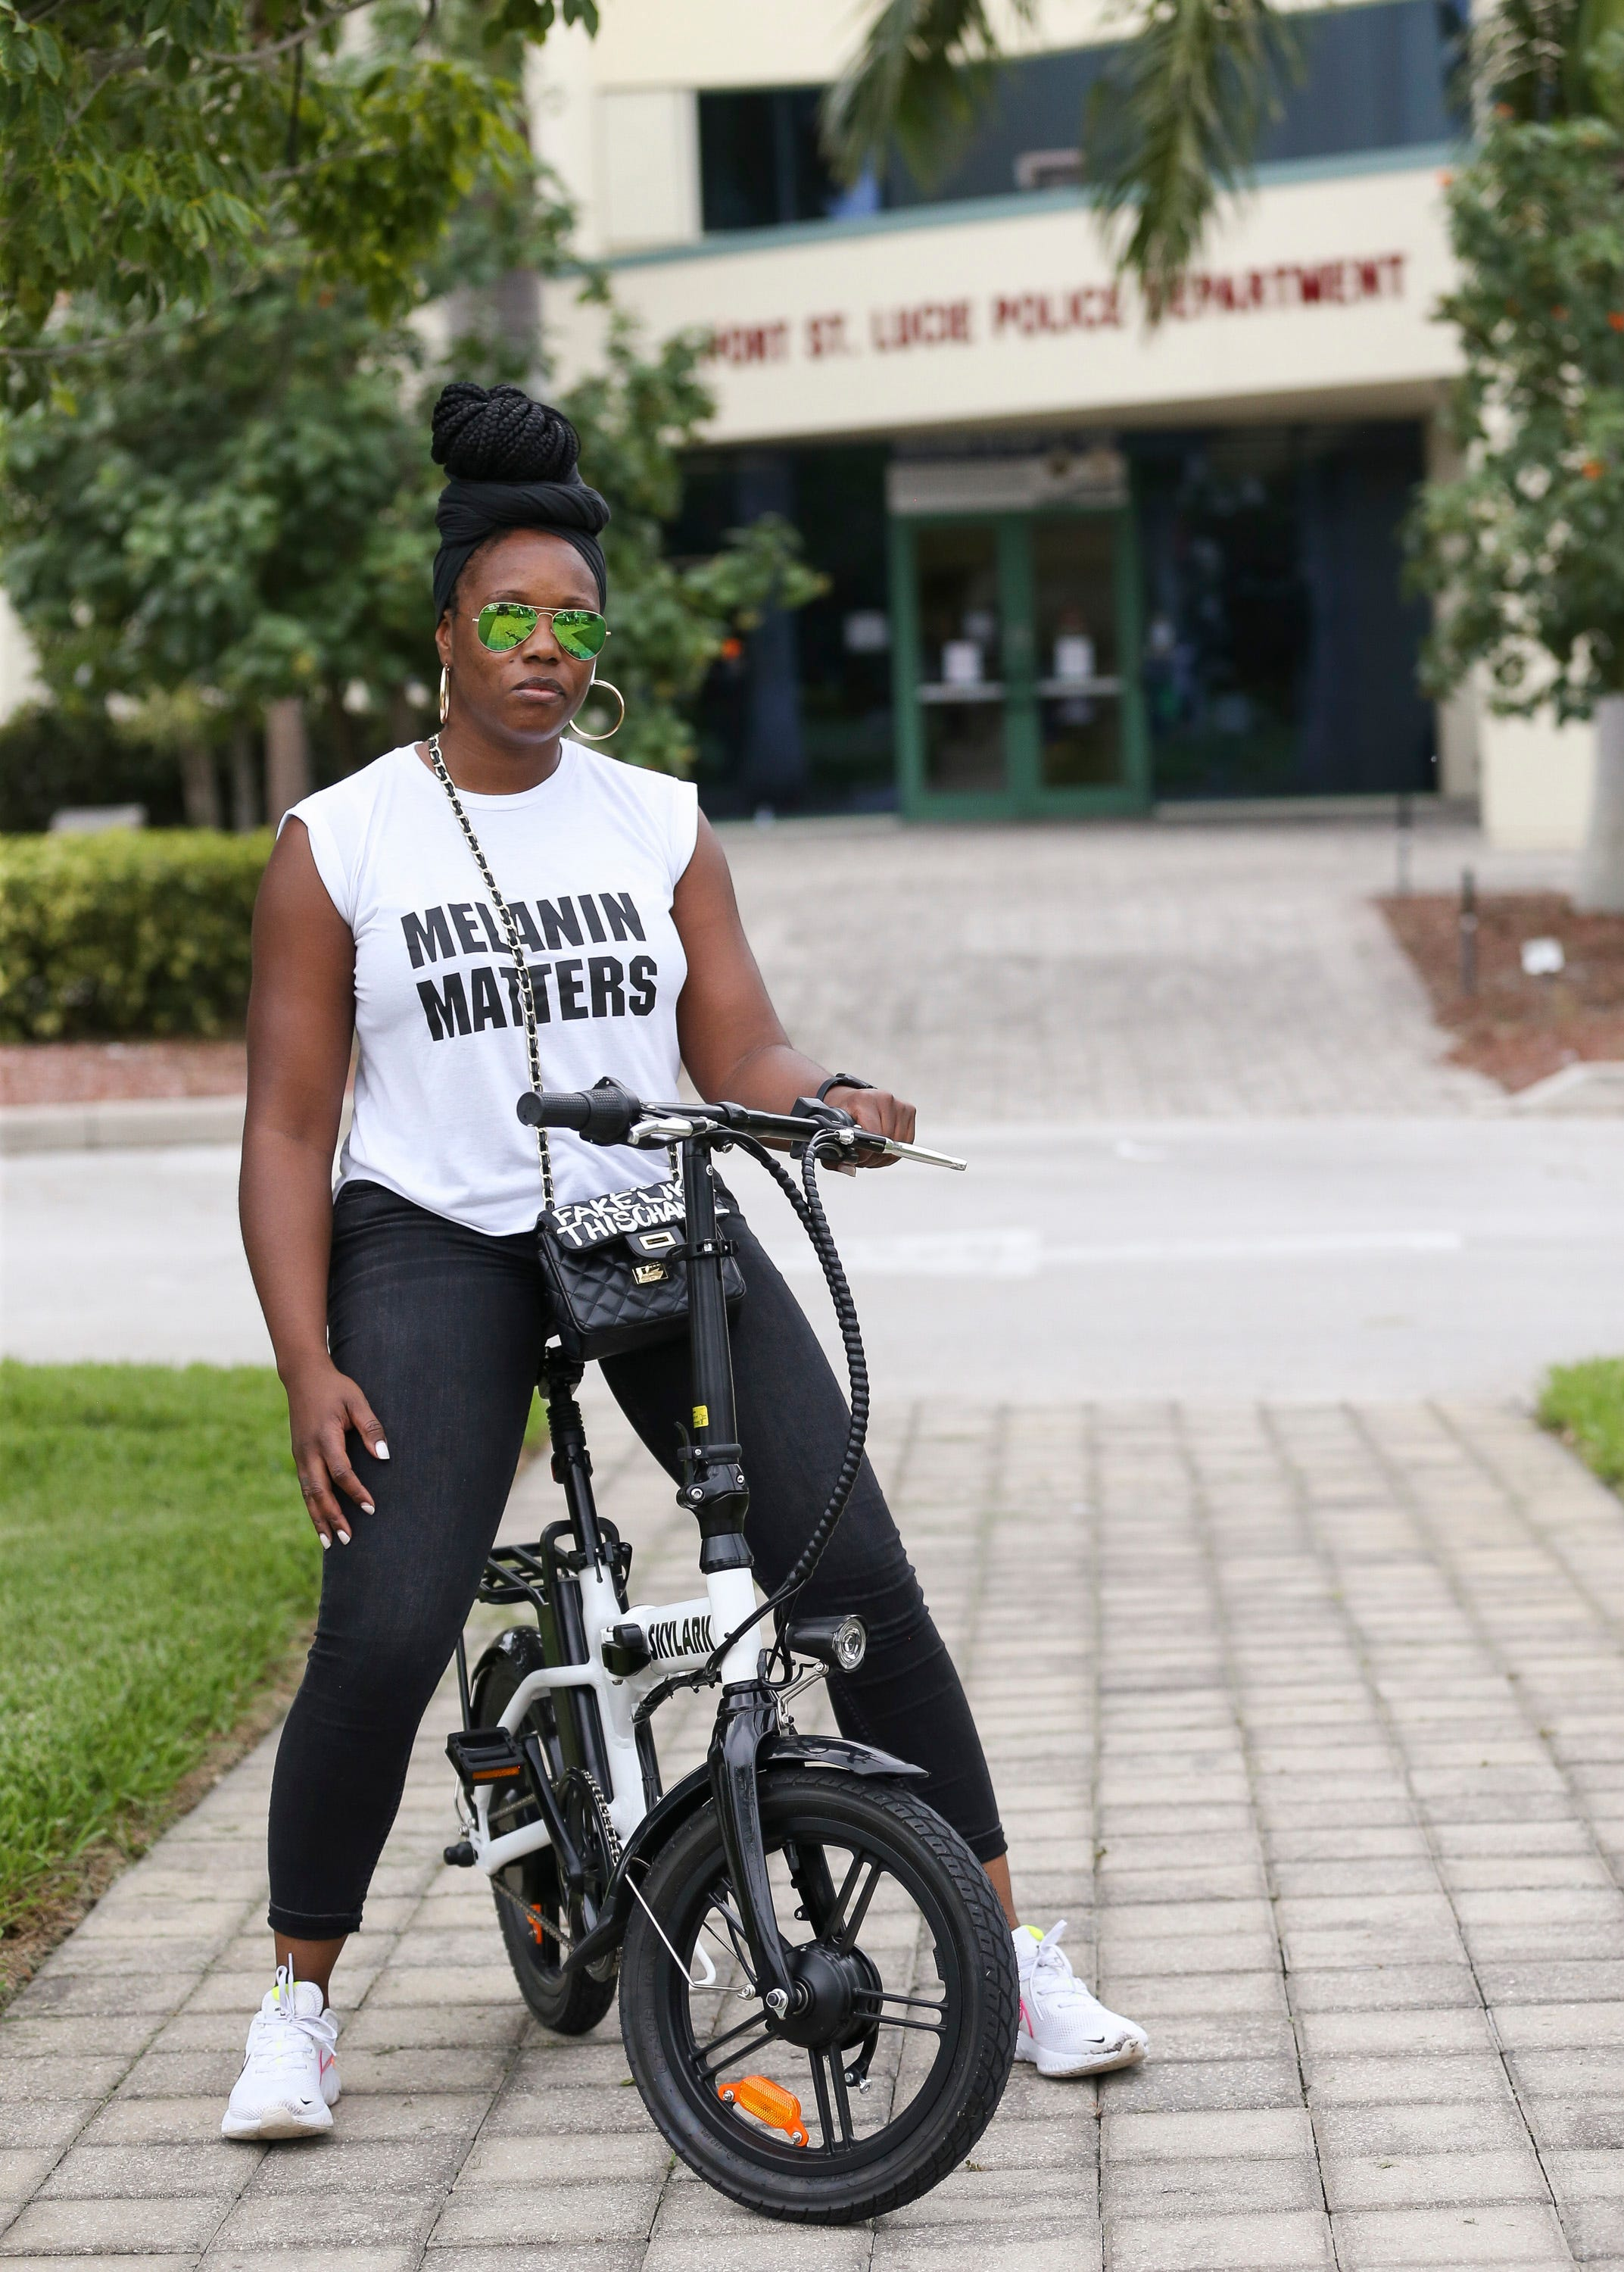 """Kenyel Day, of Port St. Lucie, attends the peace and justice demonstration at Port St. Lucie City Hall on Saturday, June 6, 2020, in Port St. Lucie. """"I come out to support,"""" said Day."""